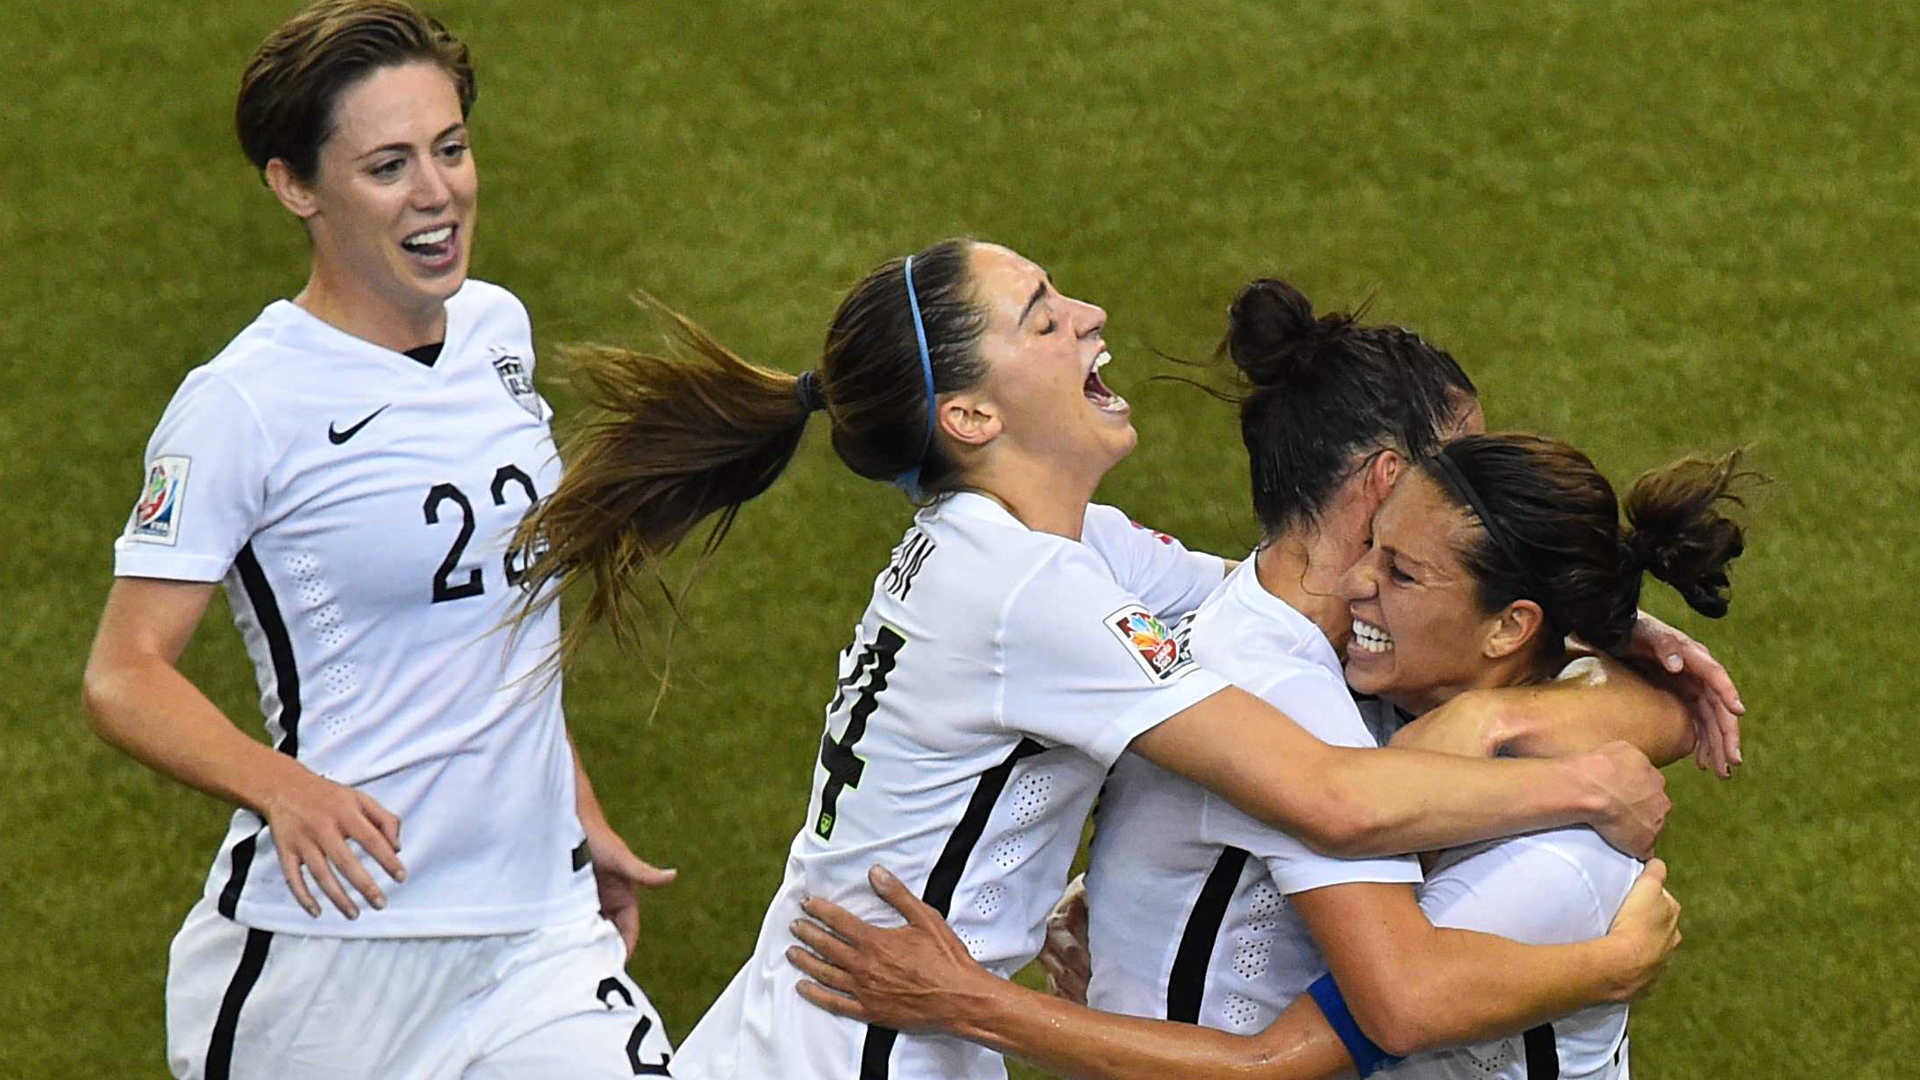 Women's World Cup: USA shuts out Germany to advance to championship